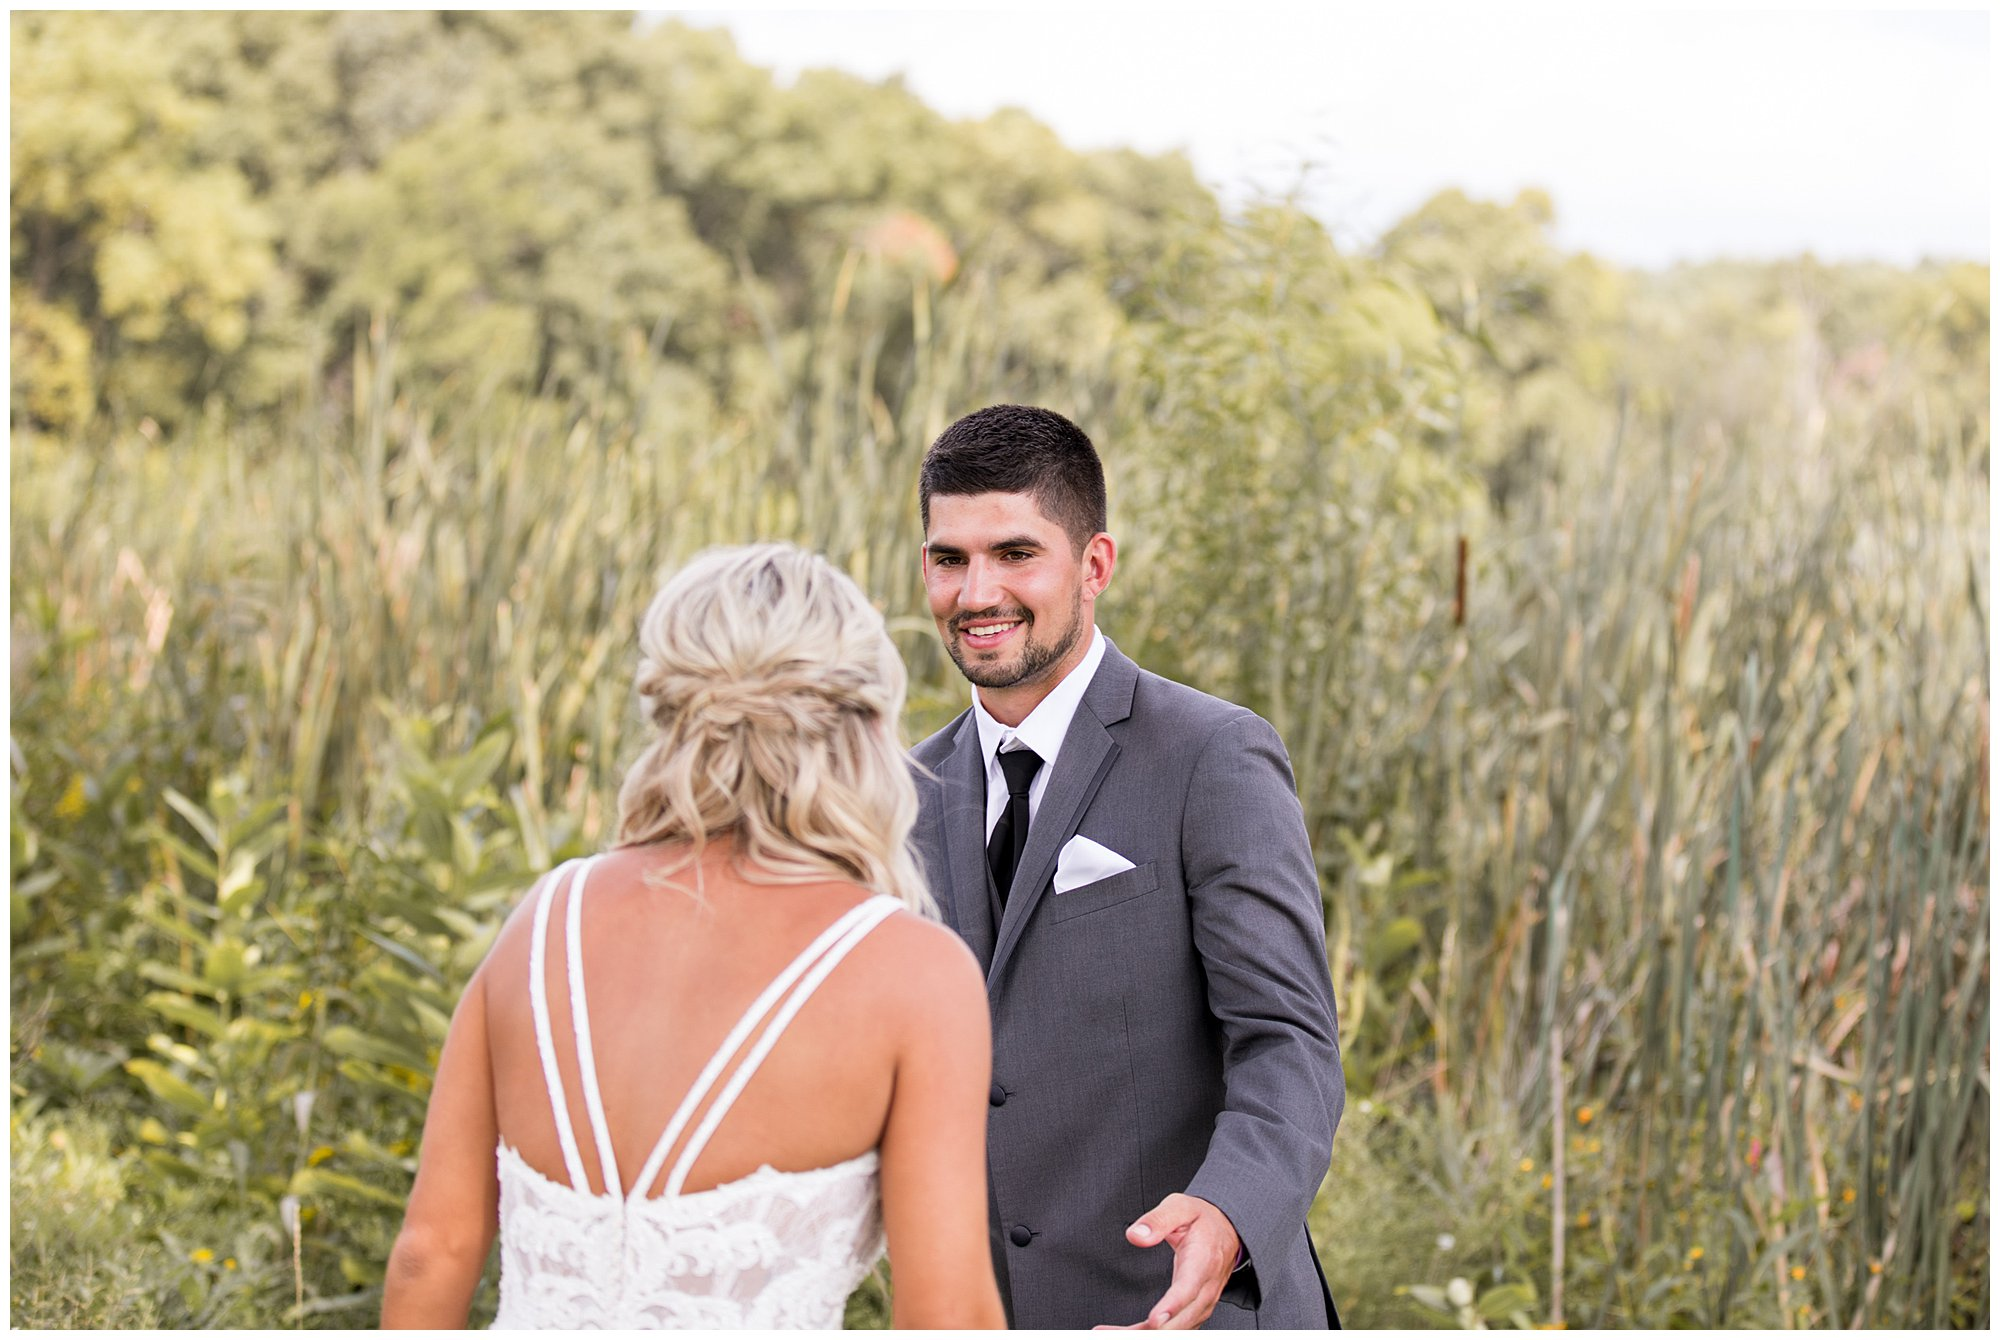 first look with bride and groom at Union 12 wedding venue in Fort Wayne